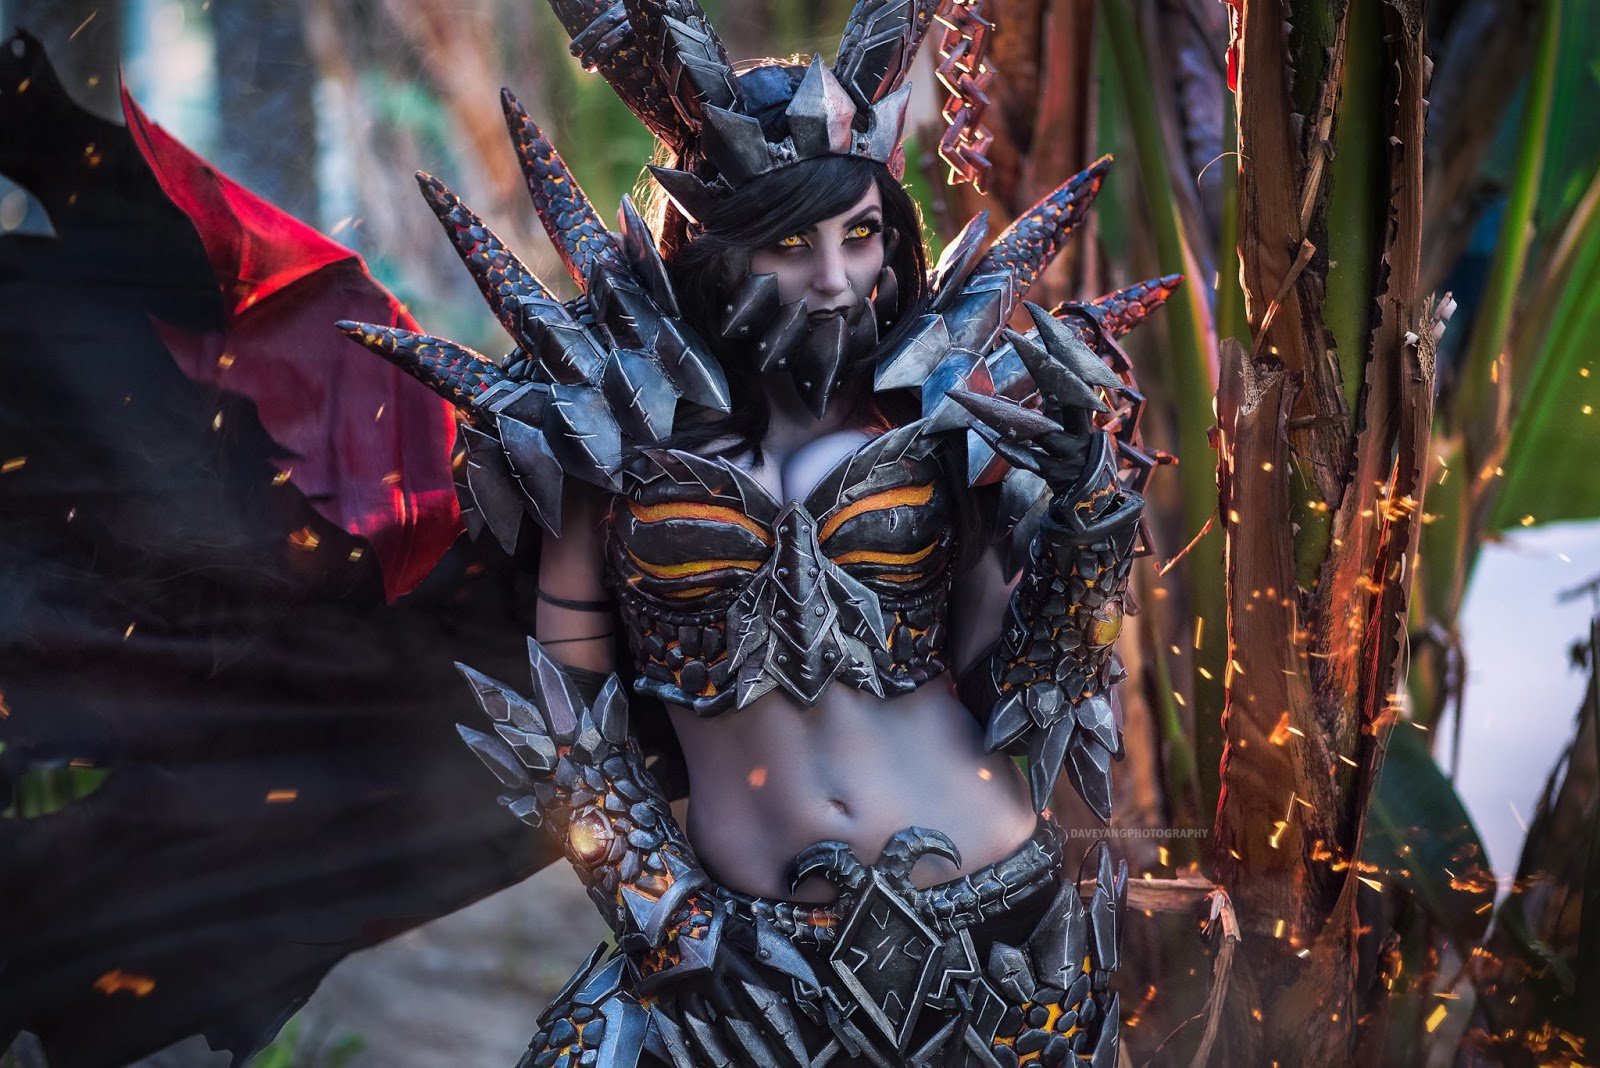 Worldofwarcraft costume porn sex photo